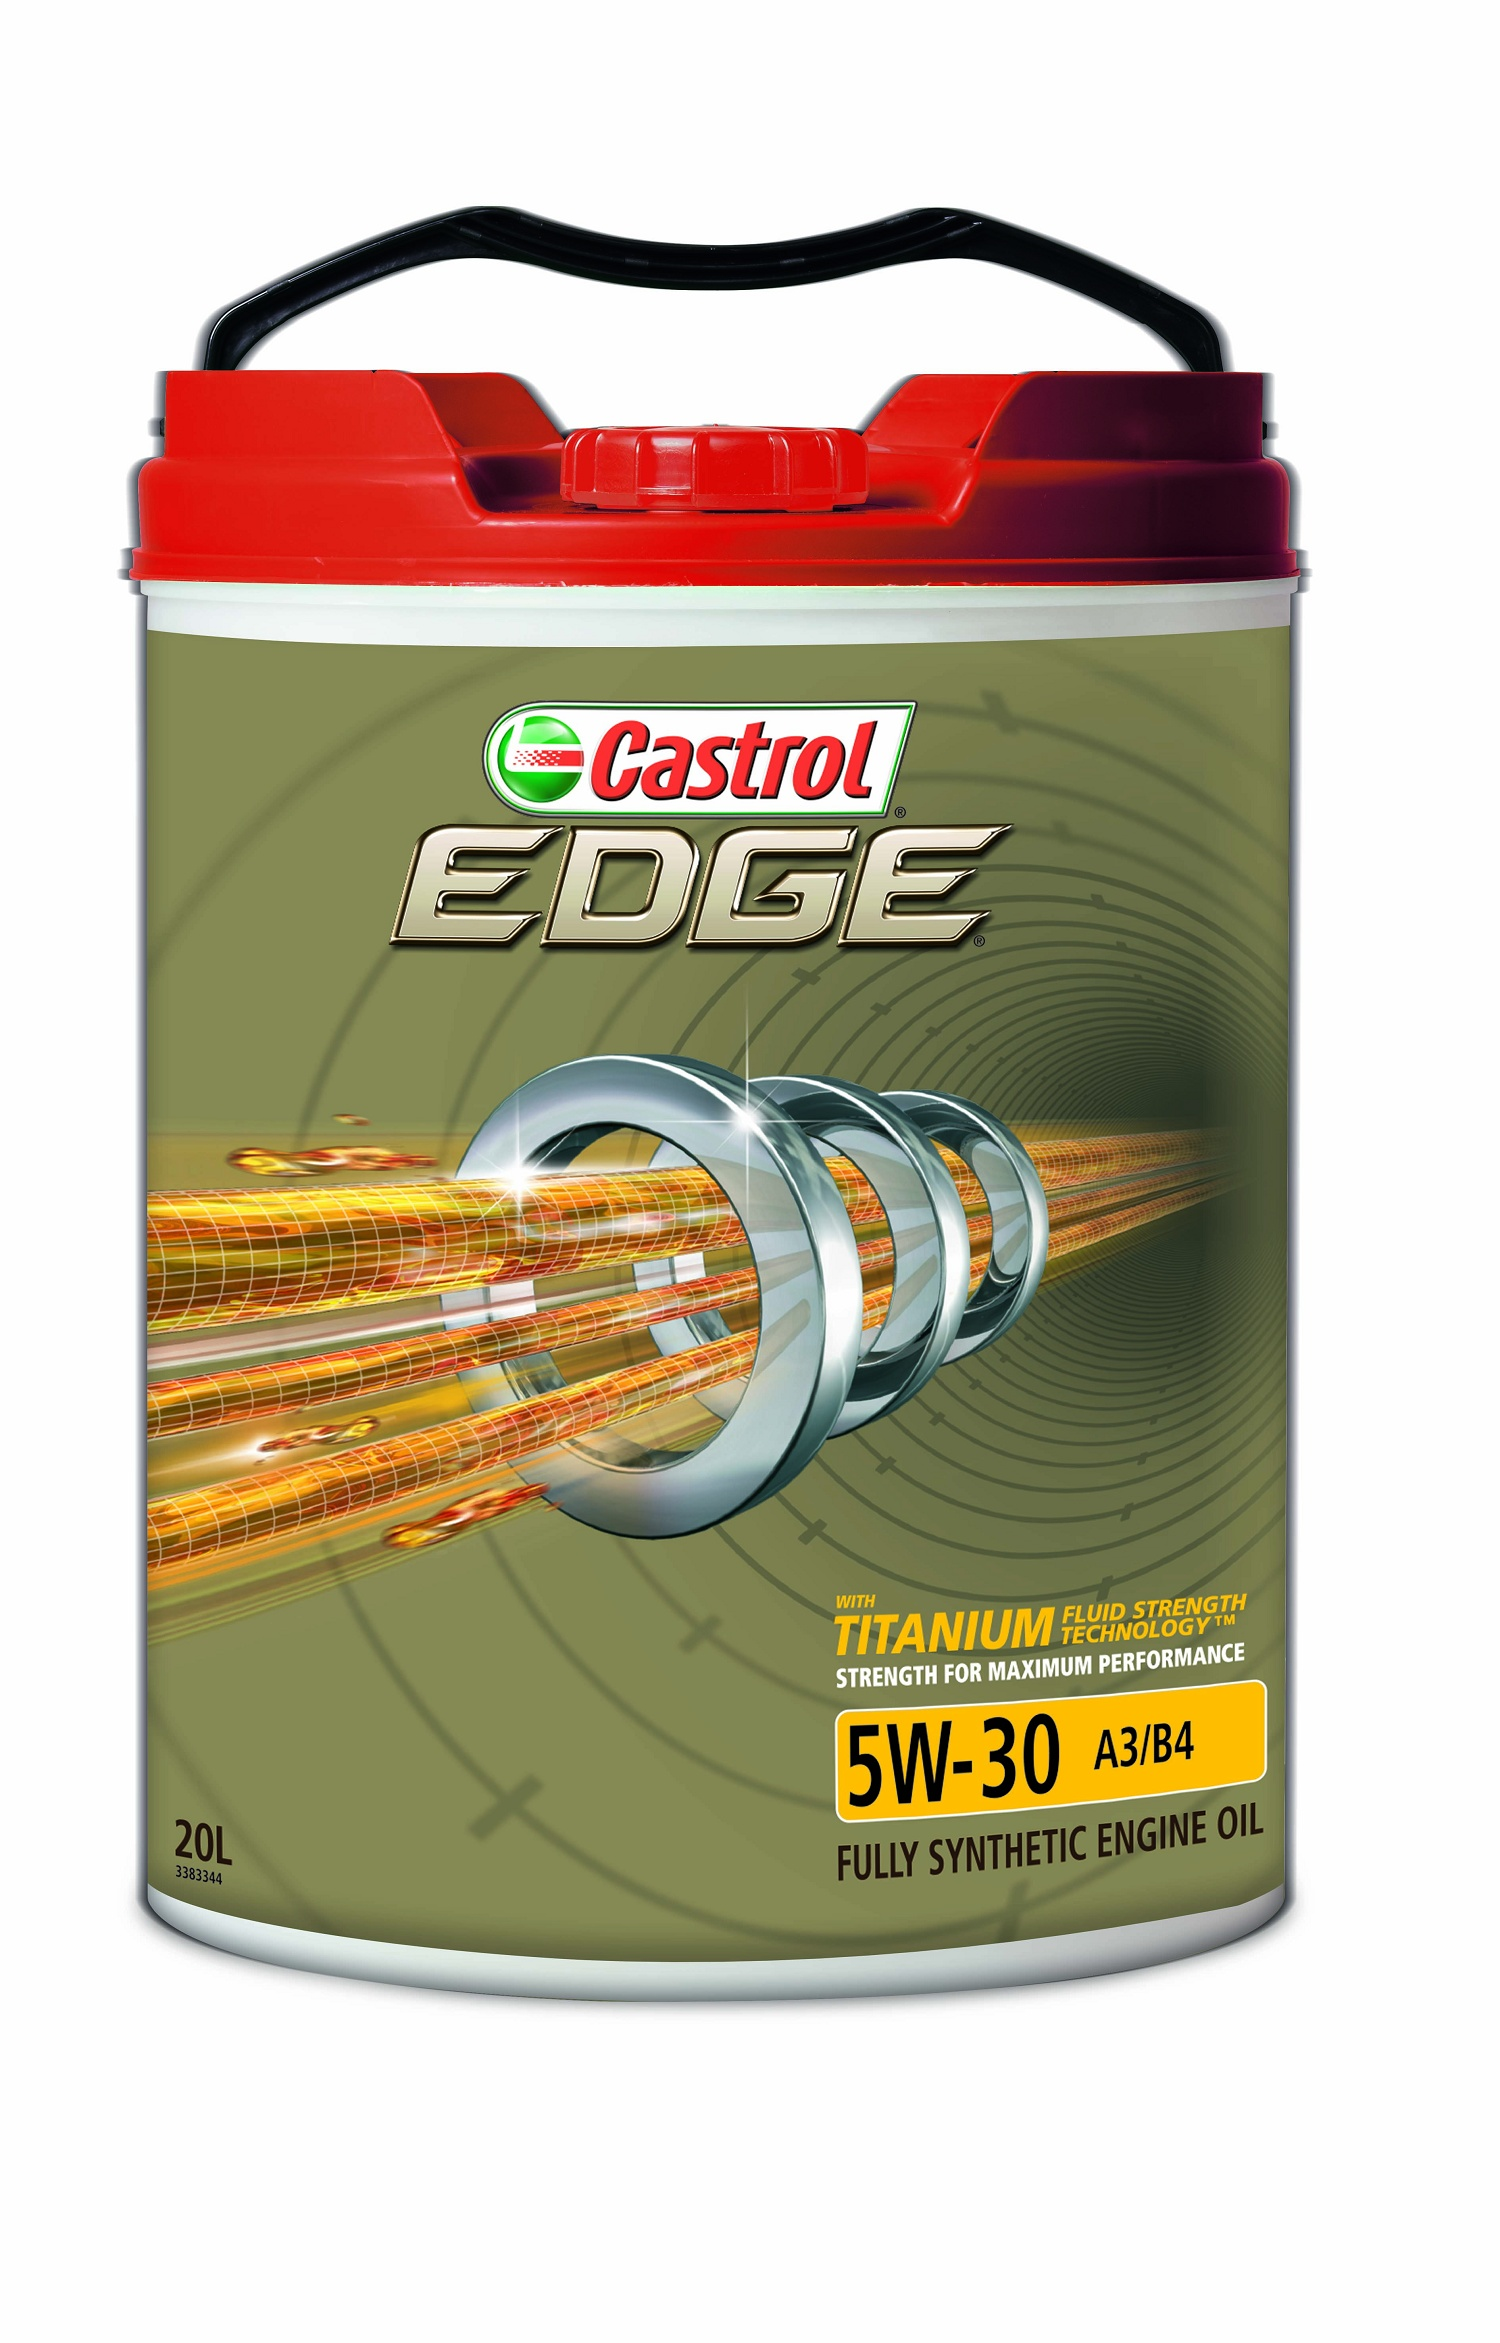 castrol edge 5w30 a3 b4 engine oil 20l 3383344. Black Bedroom Furniture Sets. Home Design Ideas